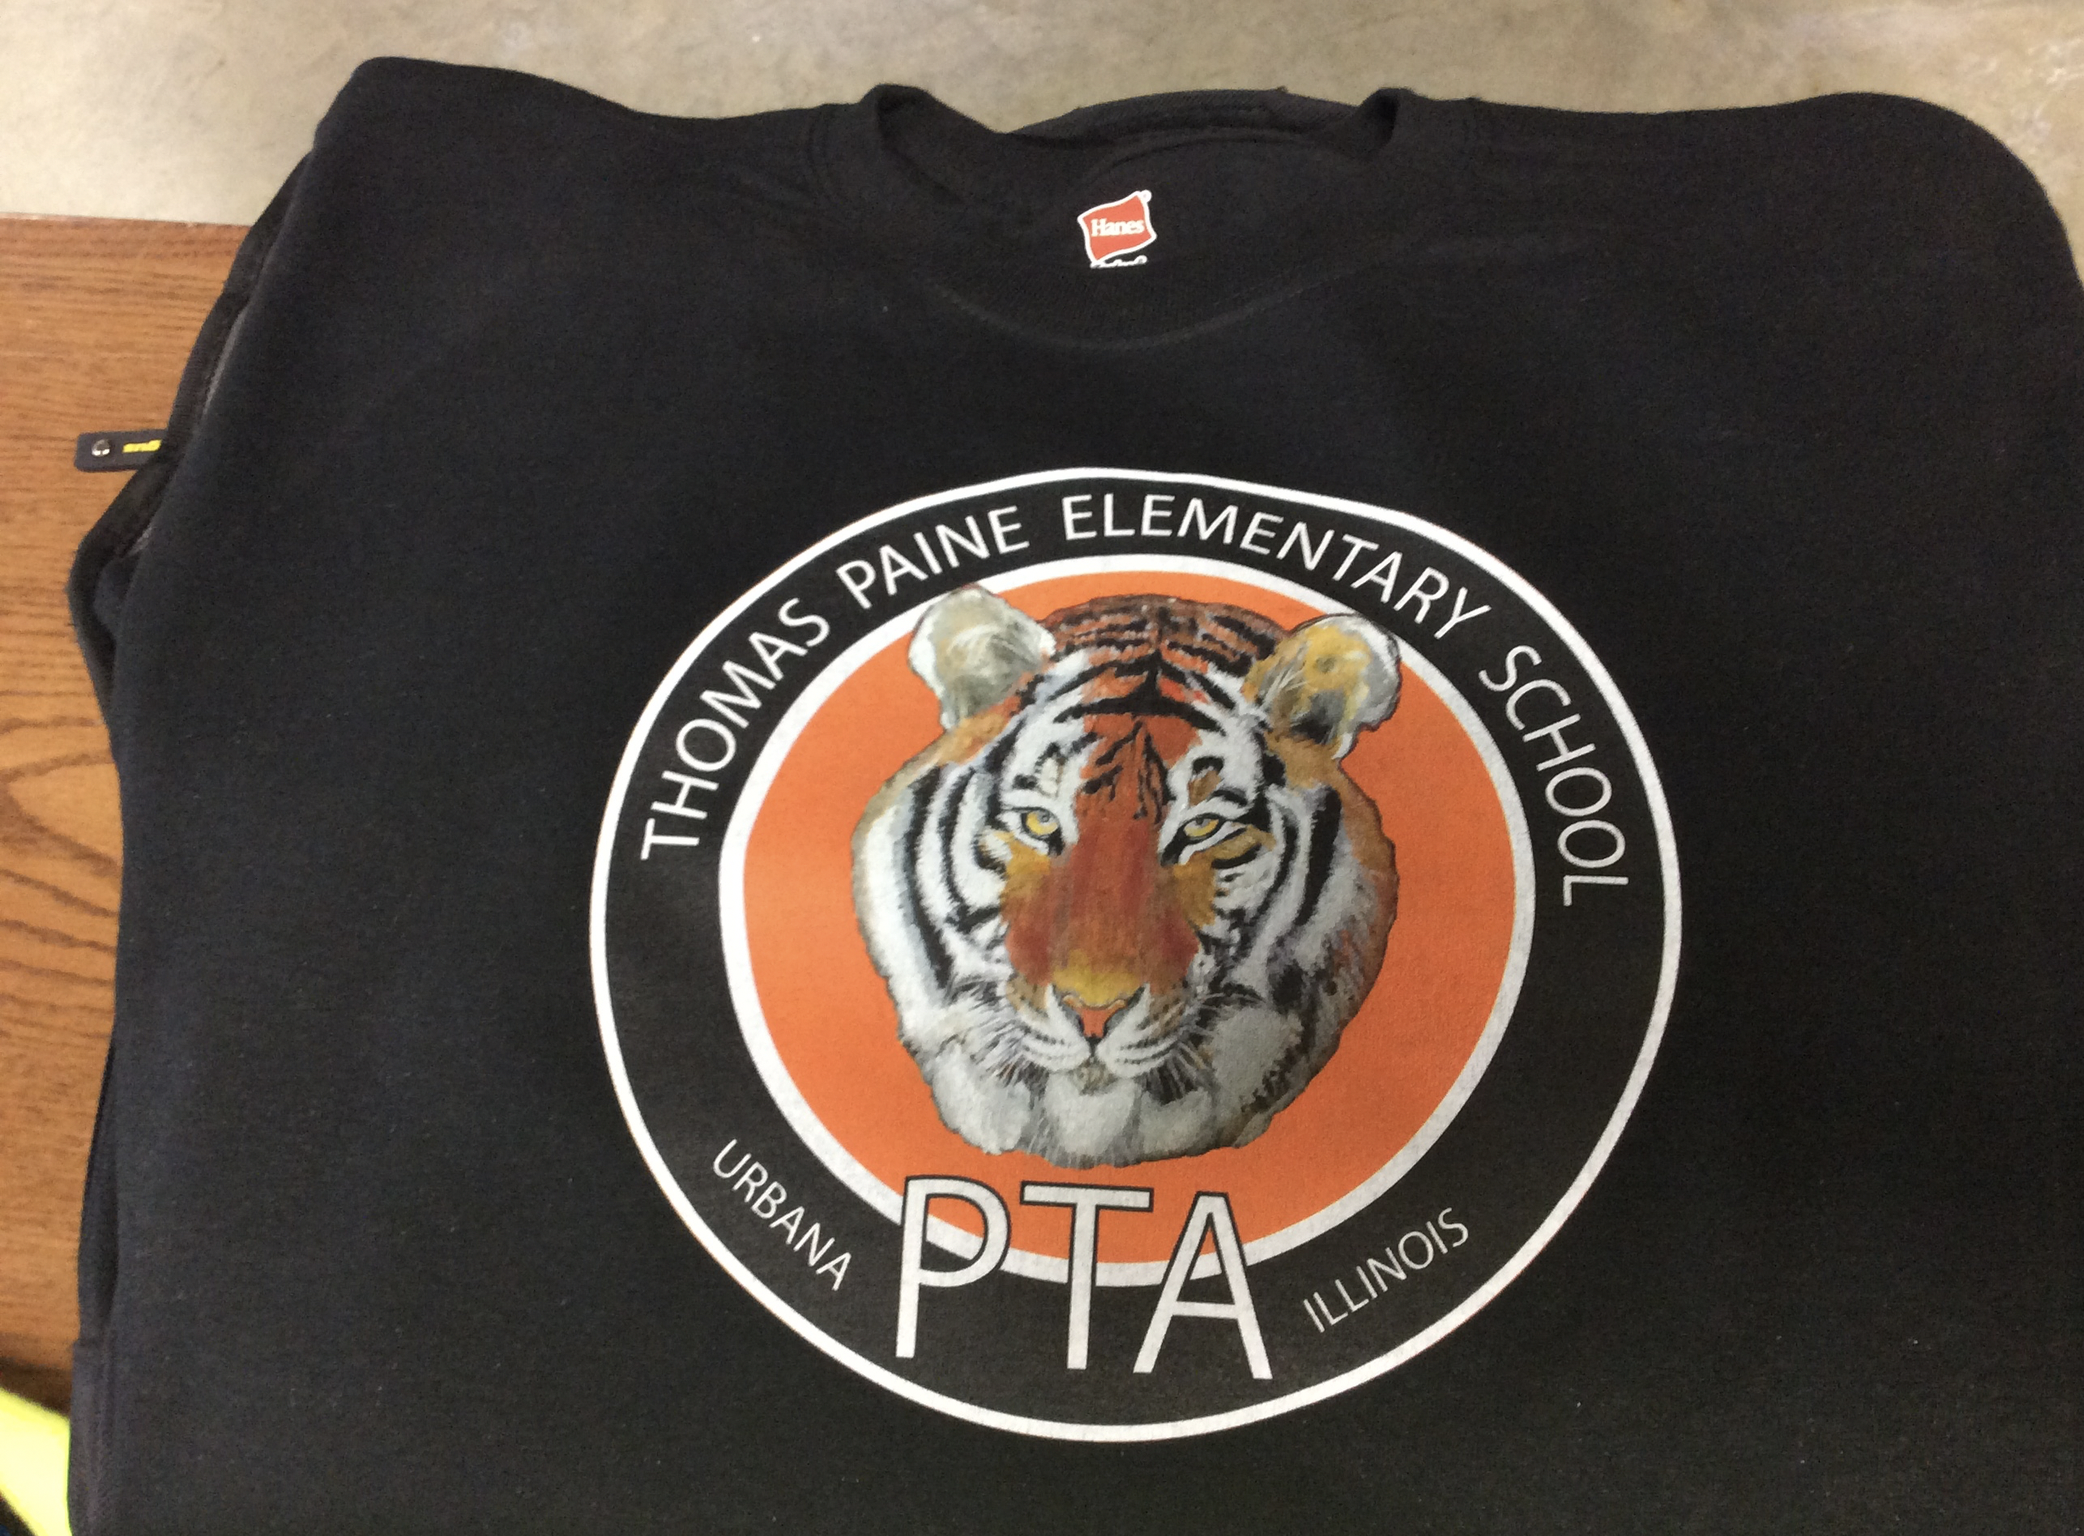 T-Shirts (multi colors) and logo for kids at Thomas Paine Elementary School designed by Ganna Sheyko / Anna Art Design